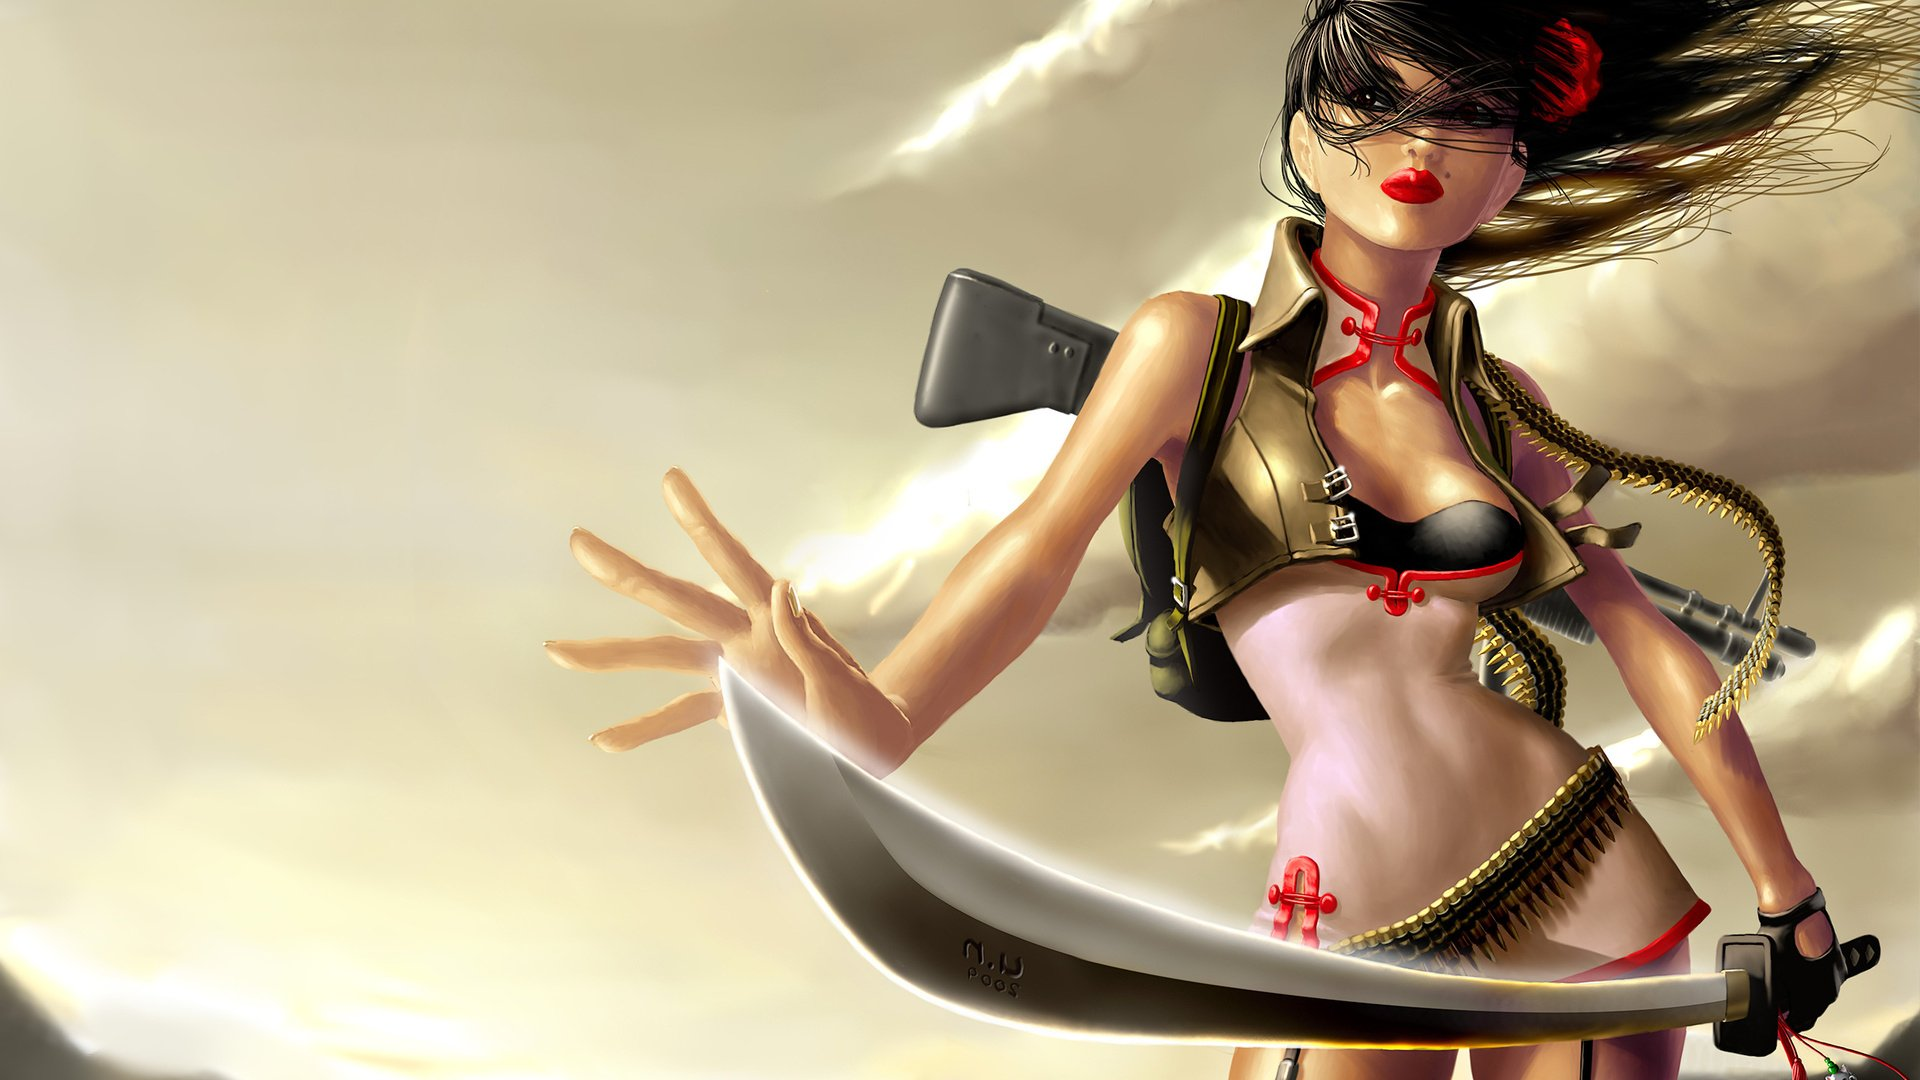 Fantasy - Women Warrior  Lipstick Red CGI Weapon Sword Gun Ammo Belt Bullet Wallpaper